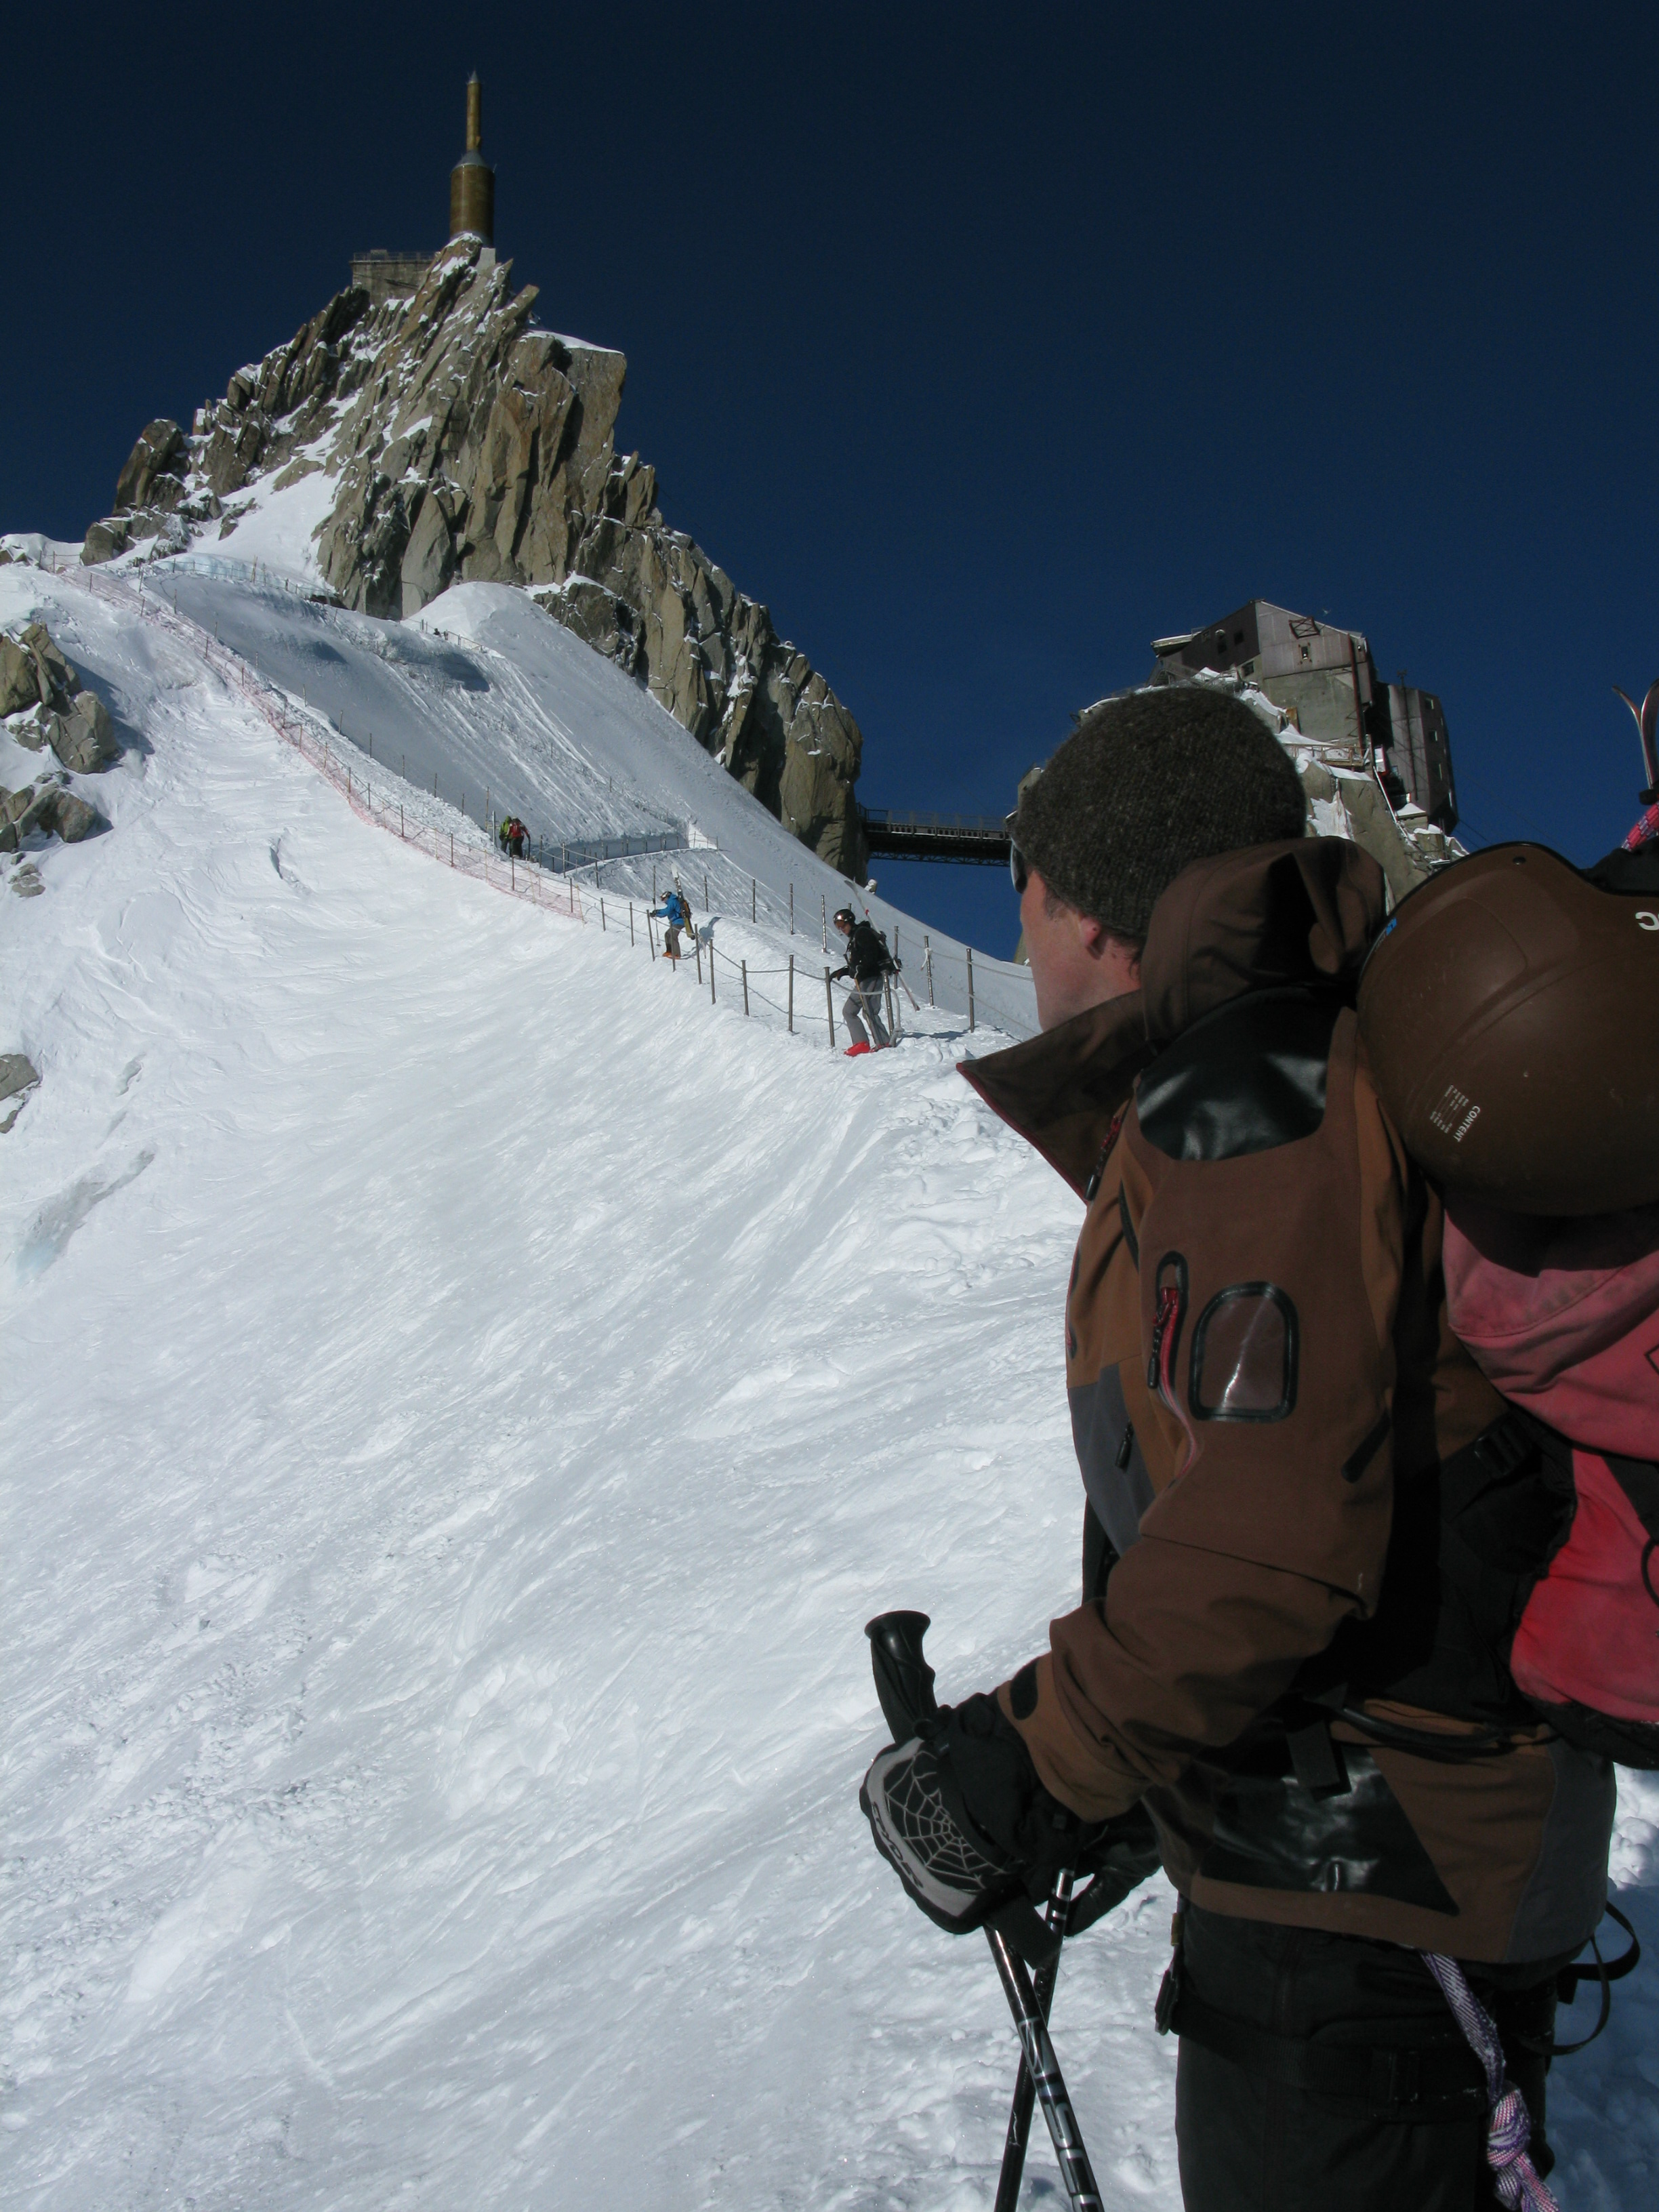 Greeny down the arete from the Aiguille du Midi. Look at the weather!